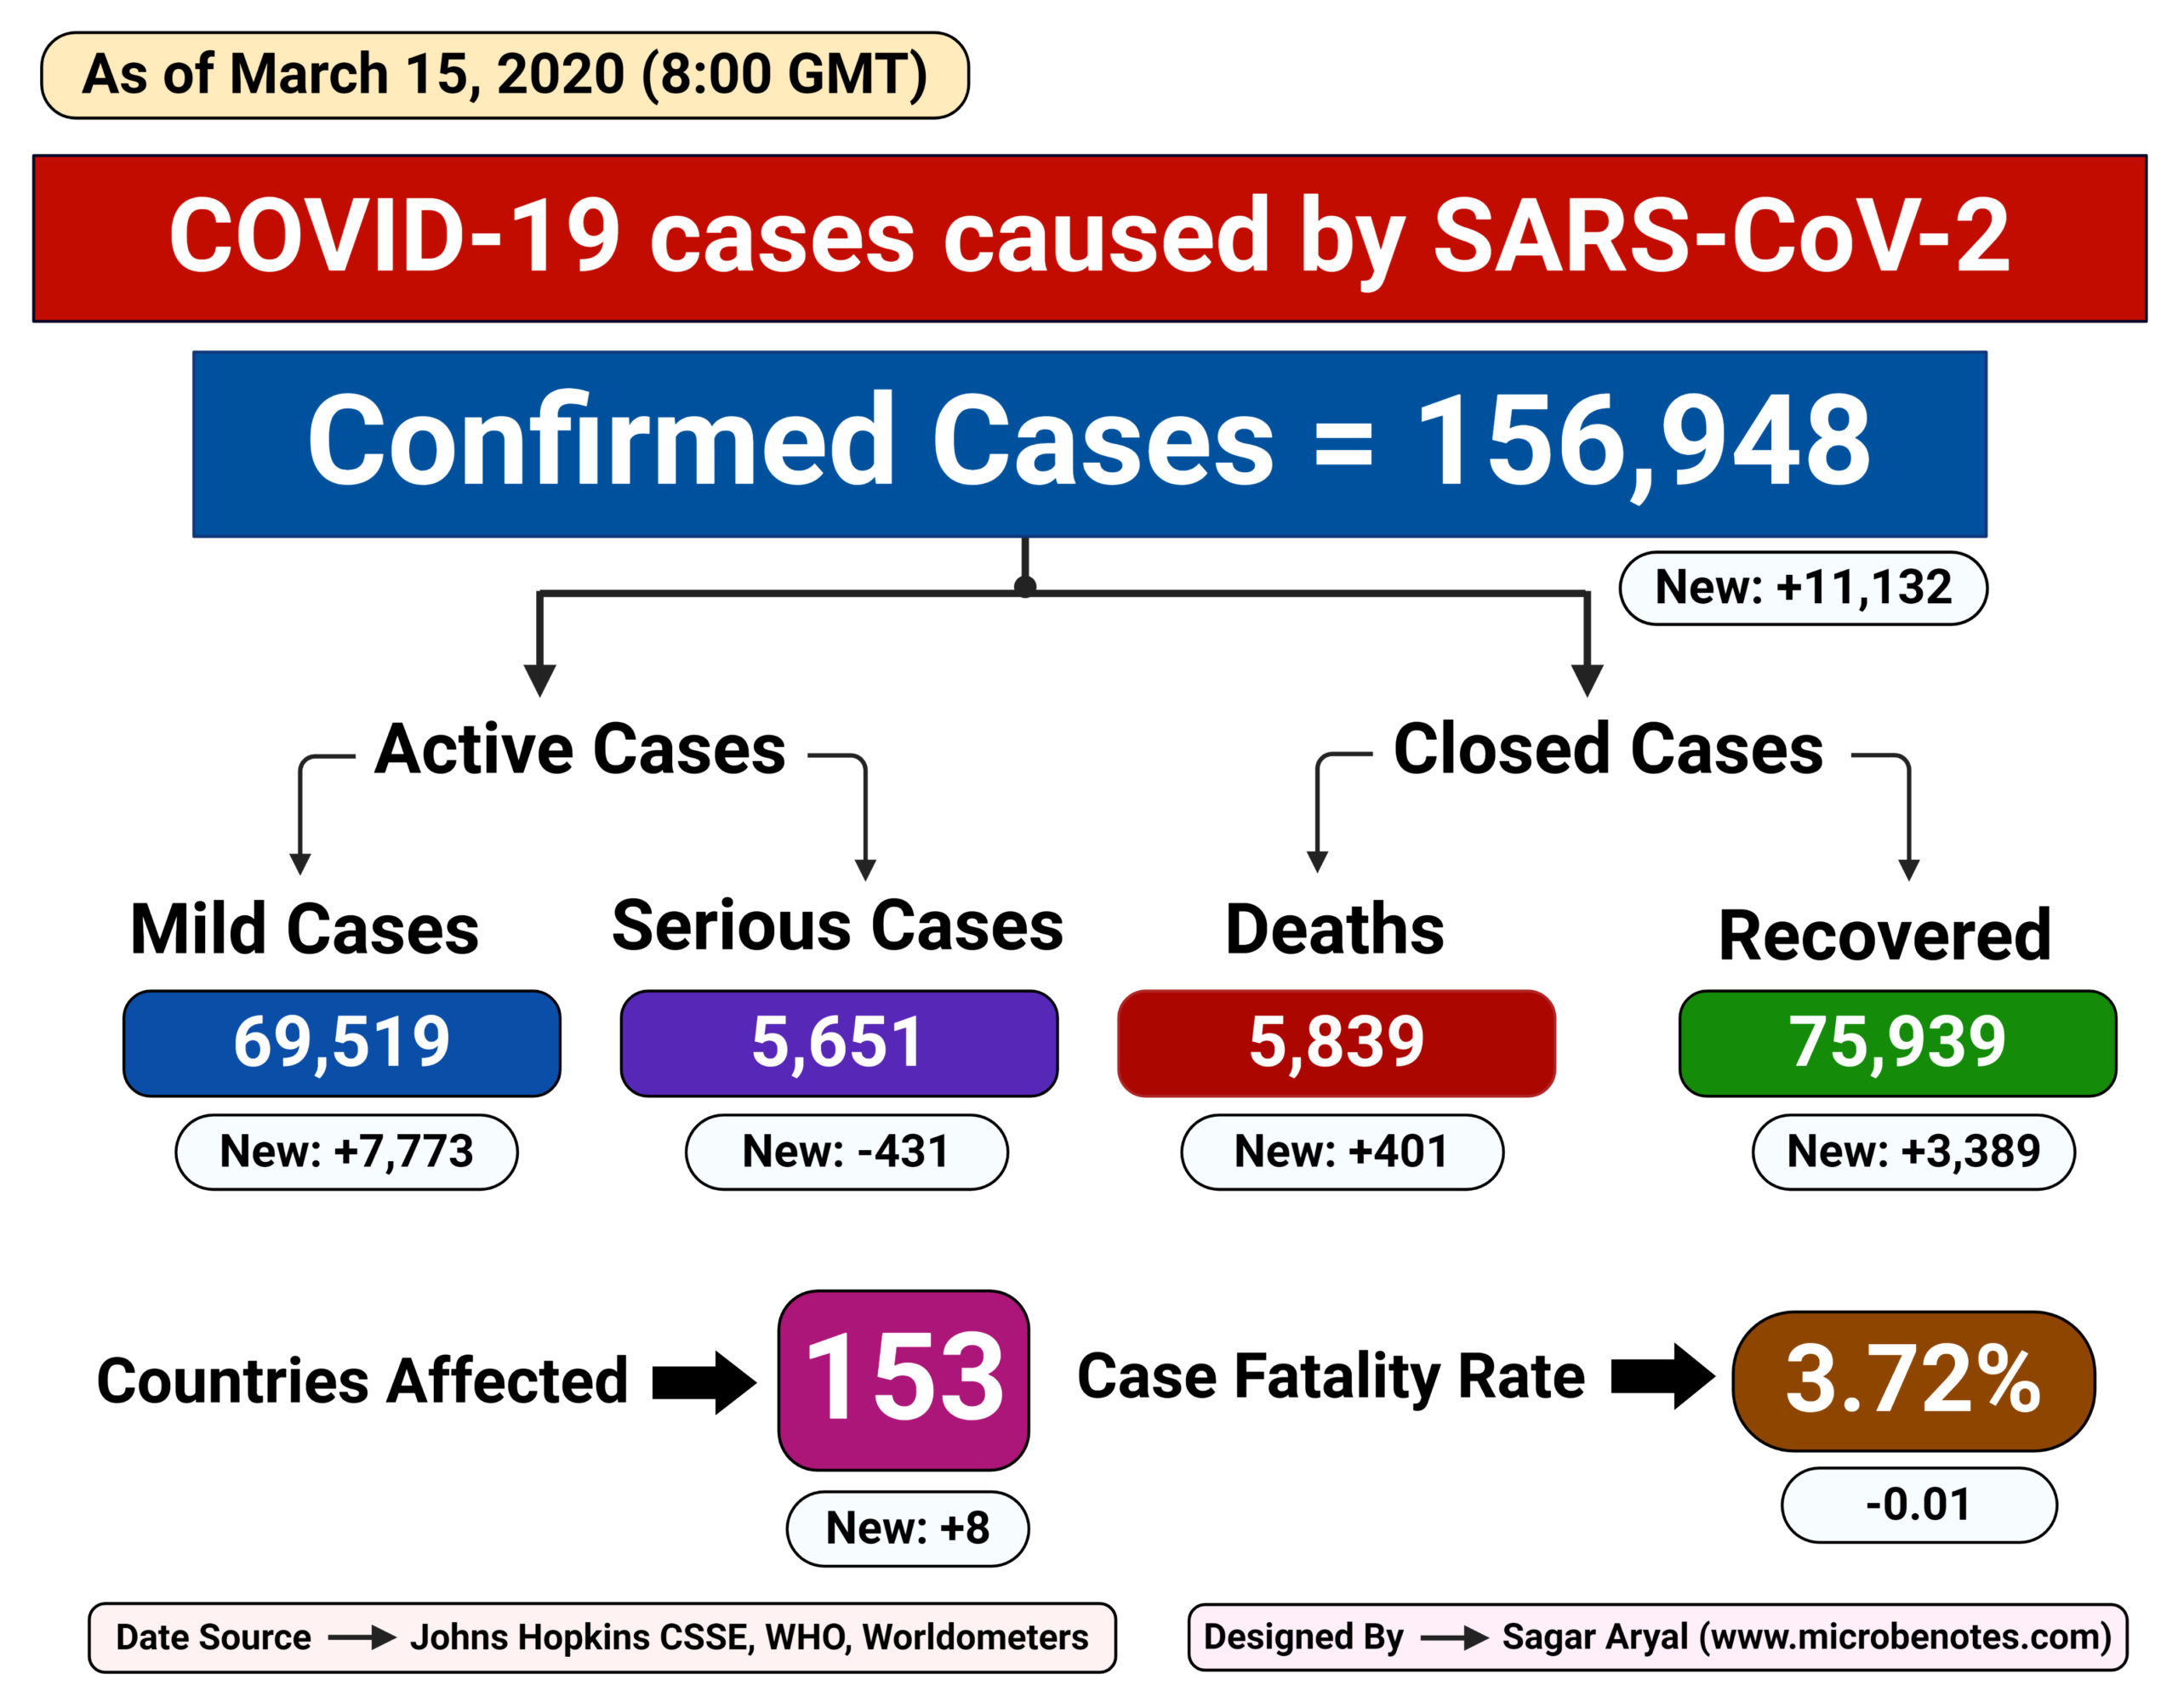 Epidemiology of COVID-19 caused by SARS-CoV-2 as of March 15, 2020